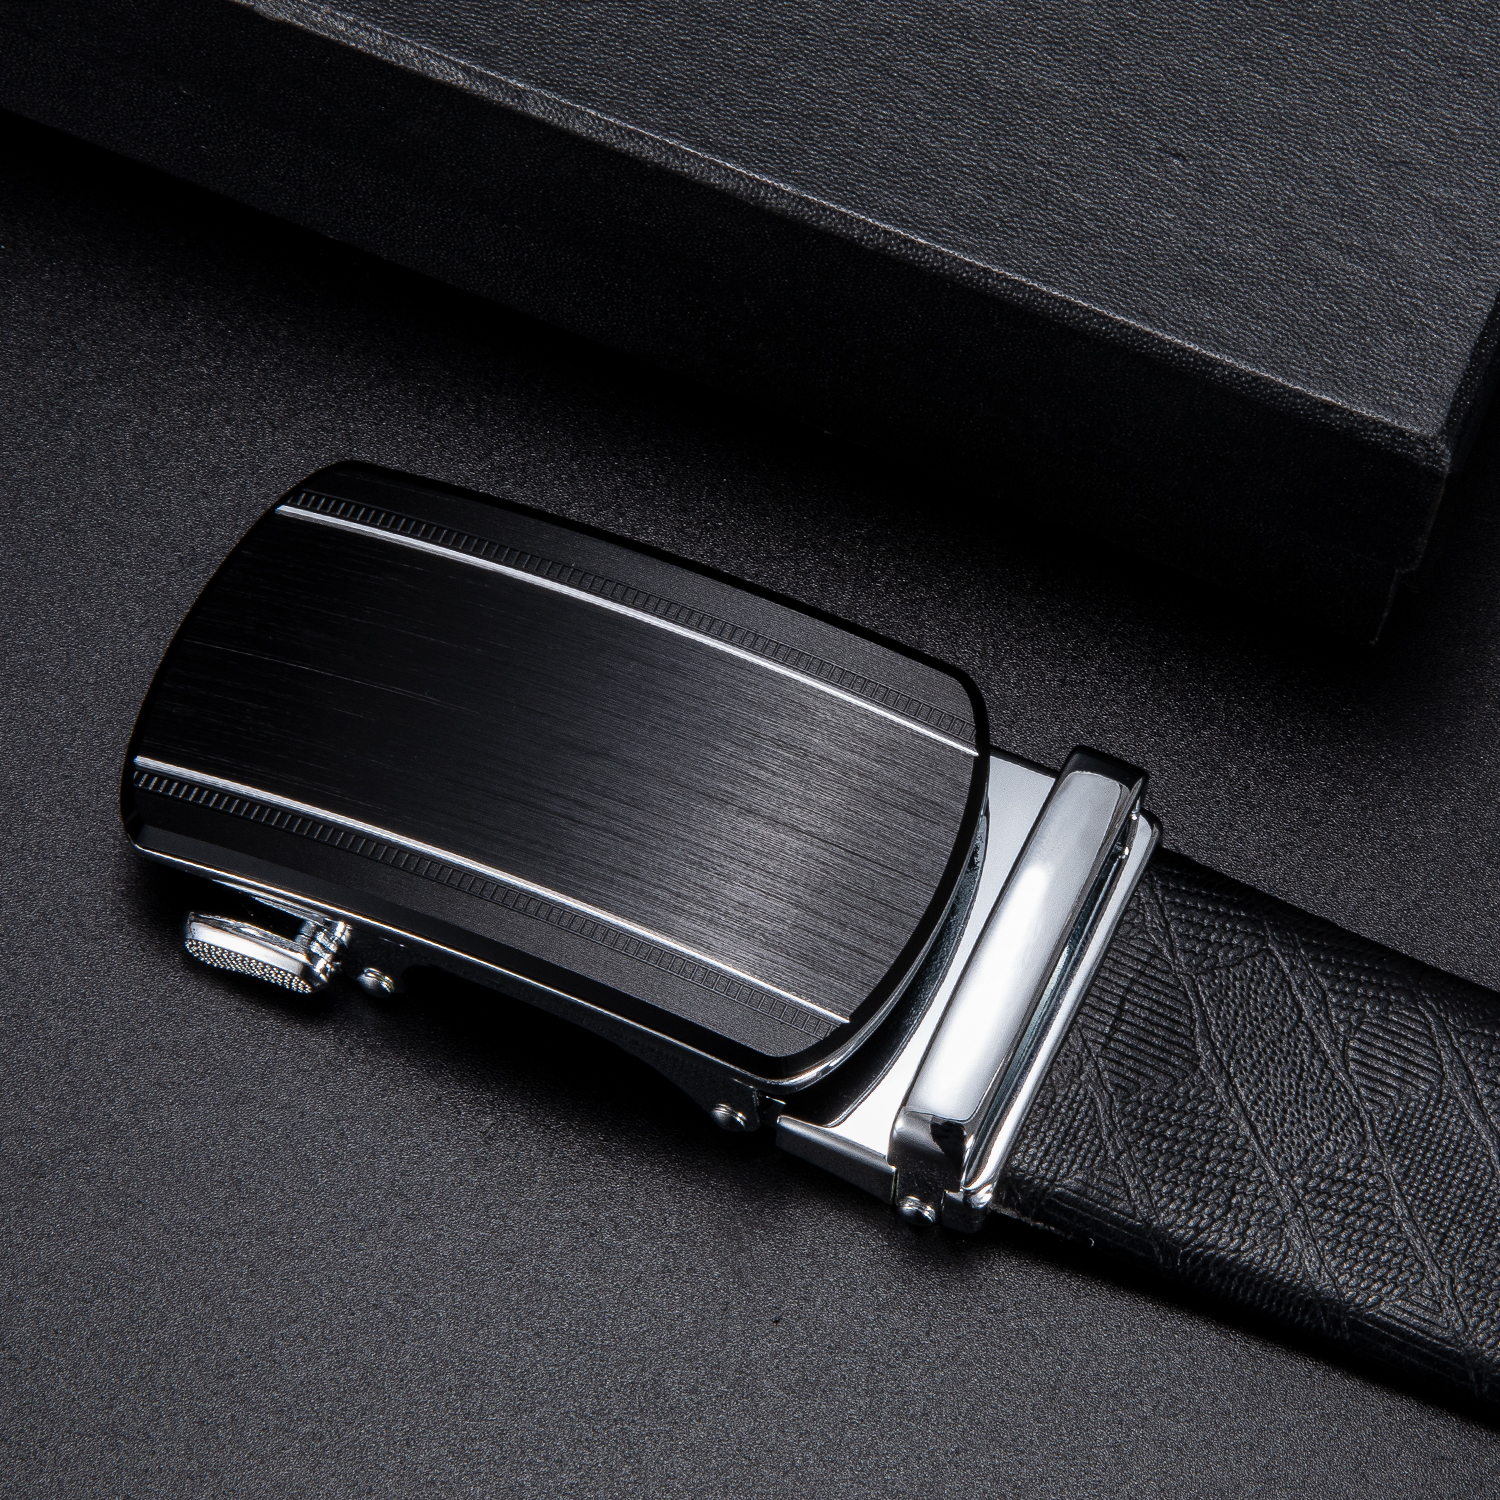 Dropship Brand Automatic Belt Buckles For Men Ratchet Buckle Black Designer Fashion Men's Leather Belt Buckle 3.5cm Width